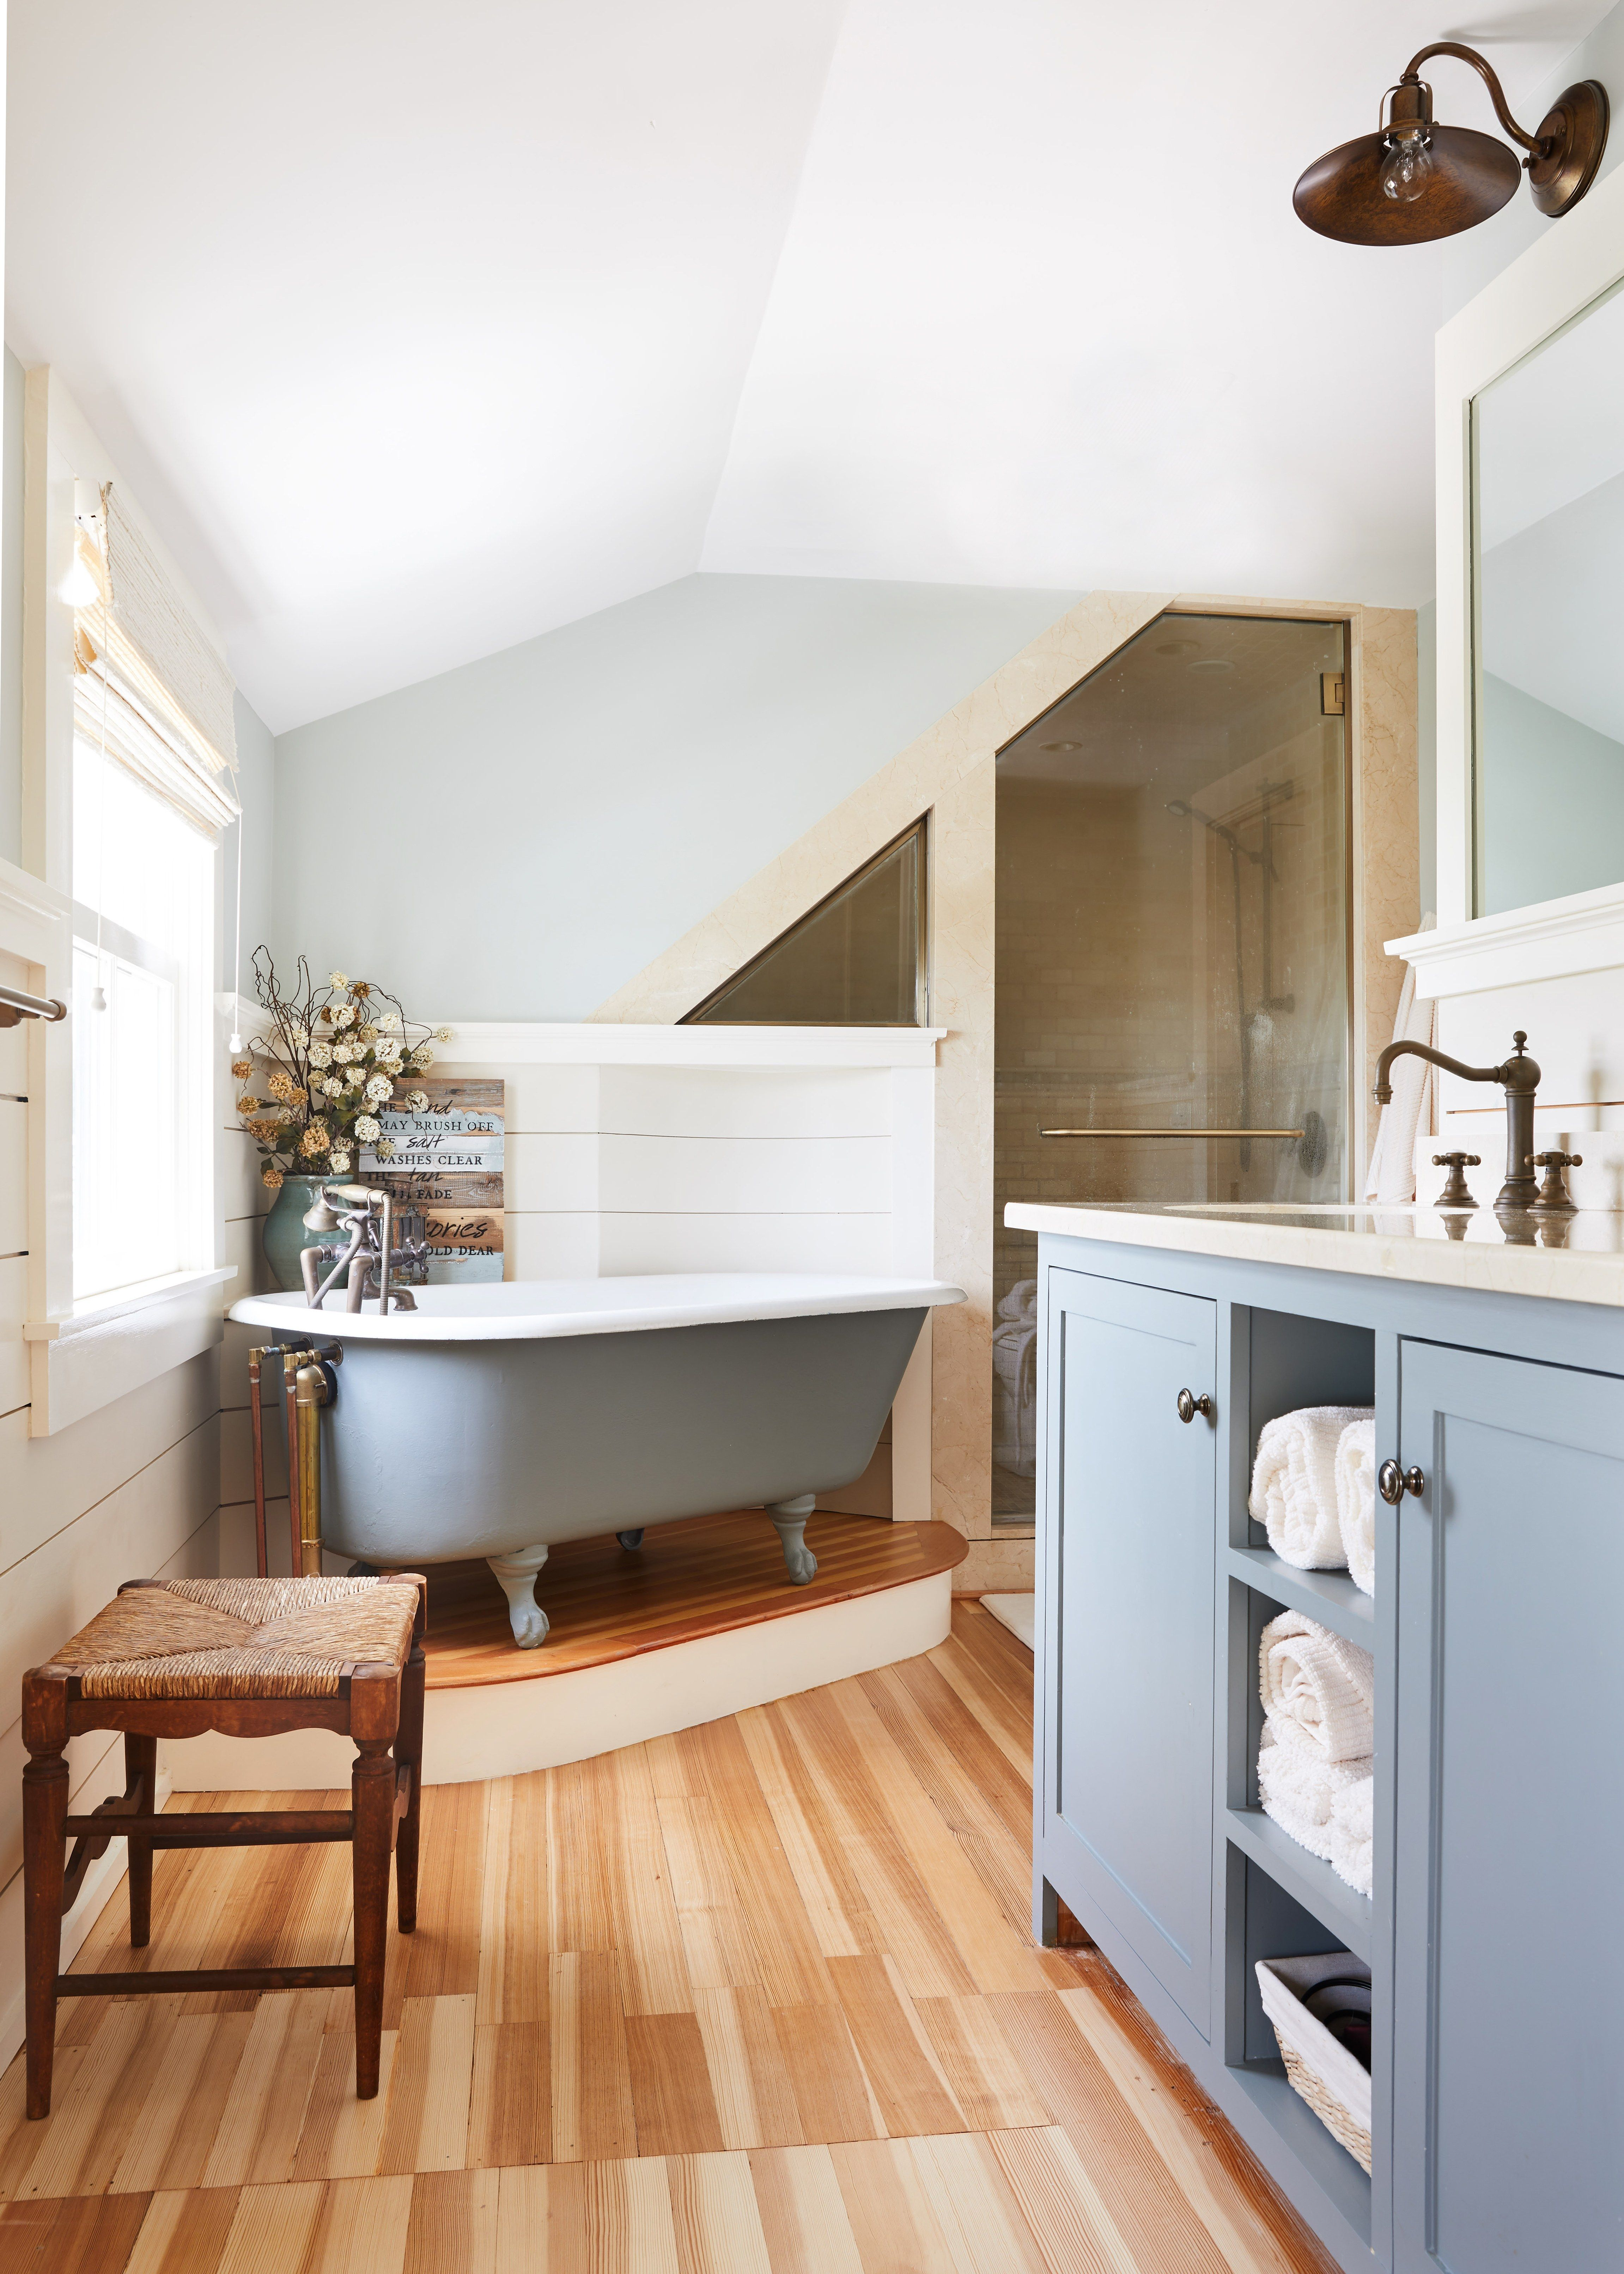 A Kennedy Family S Hyannis Port Compound Carriage House Turned